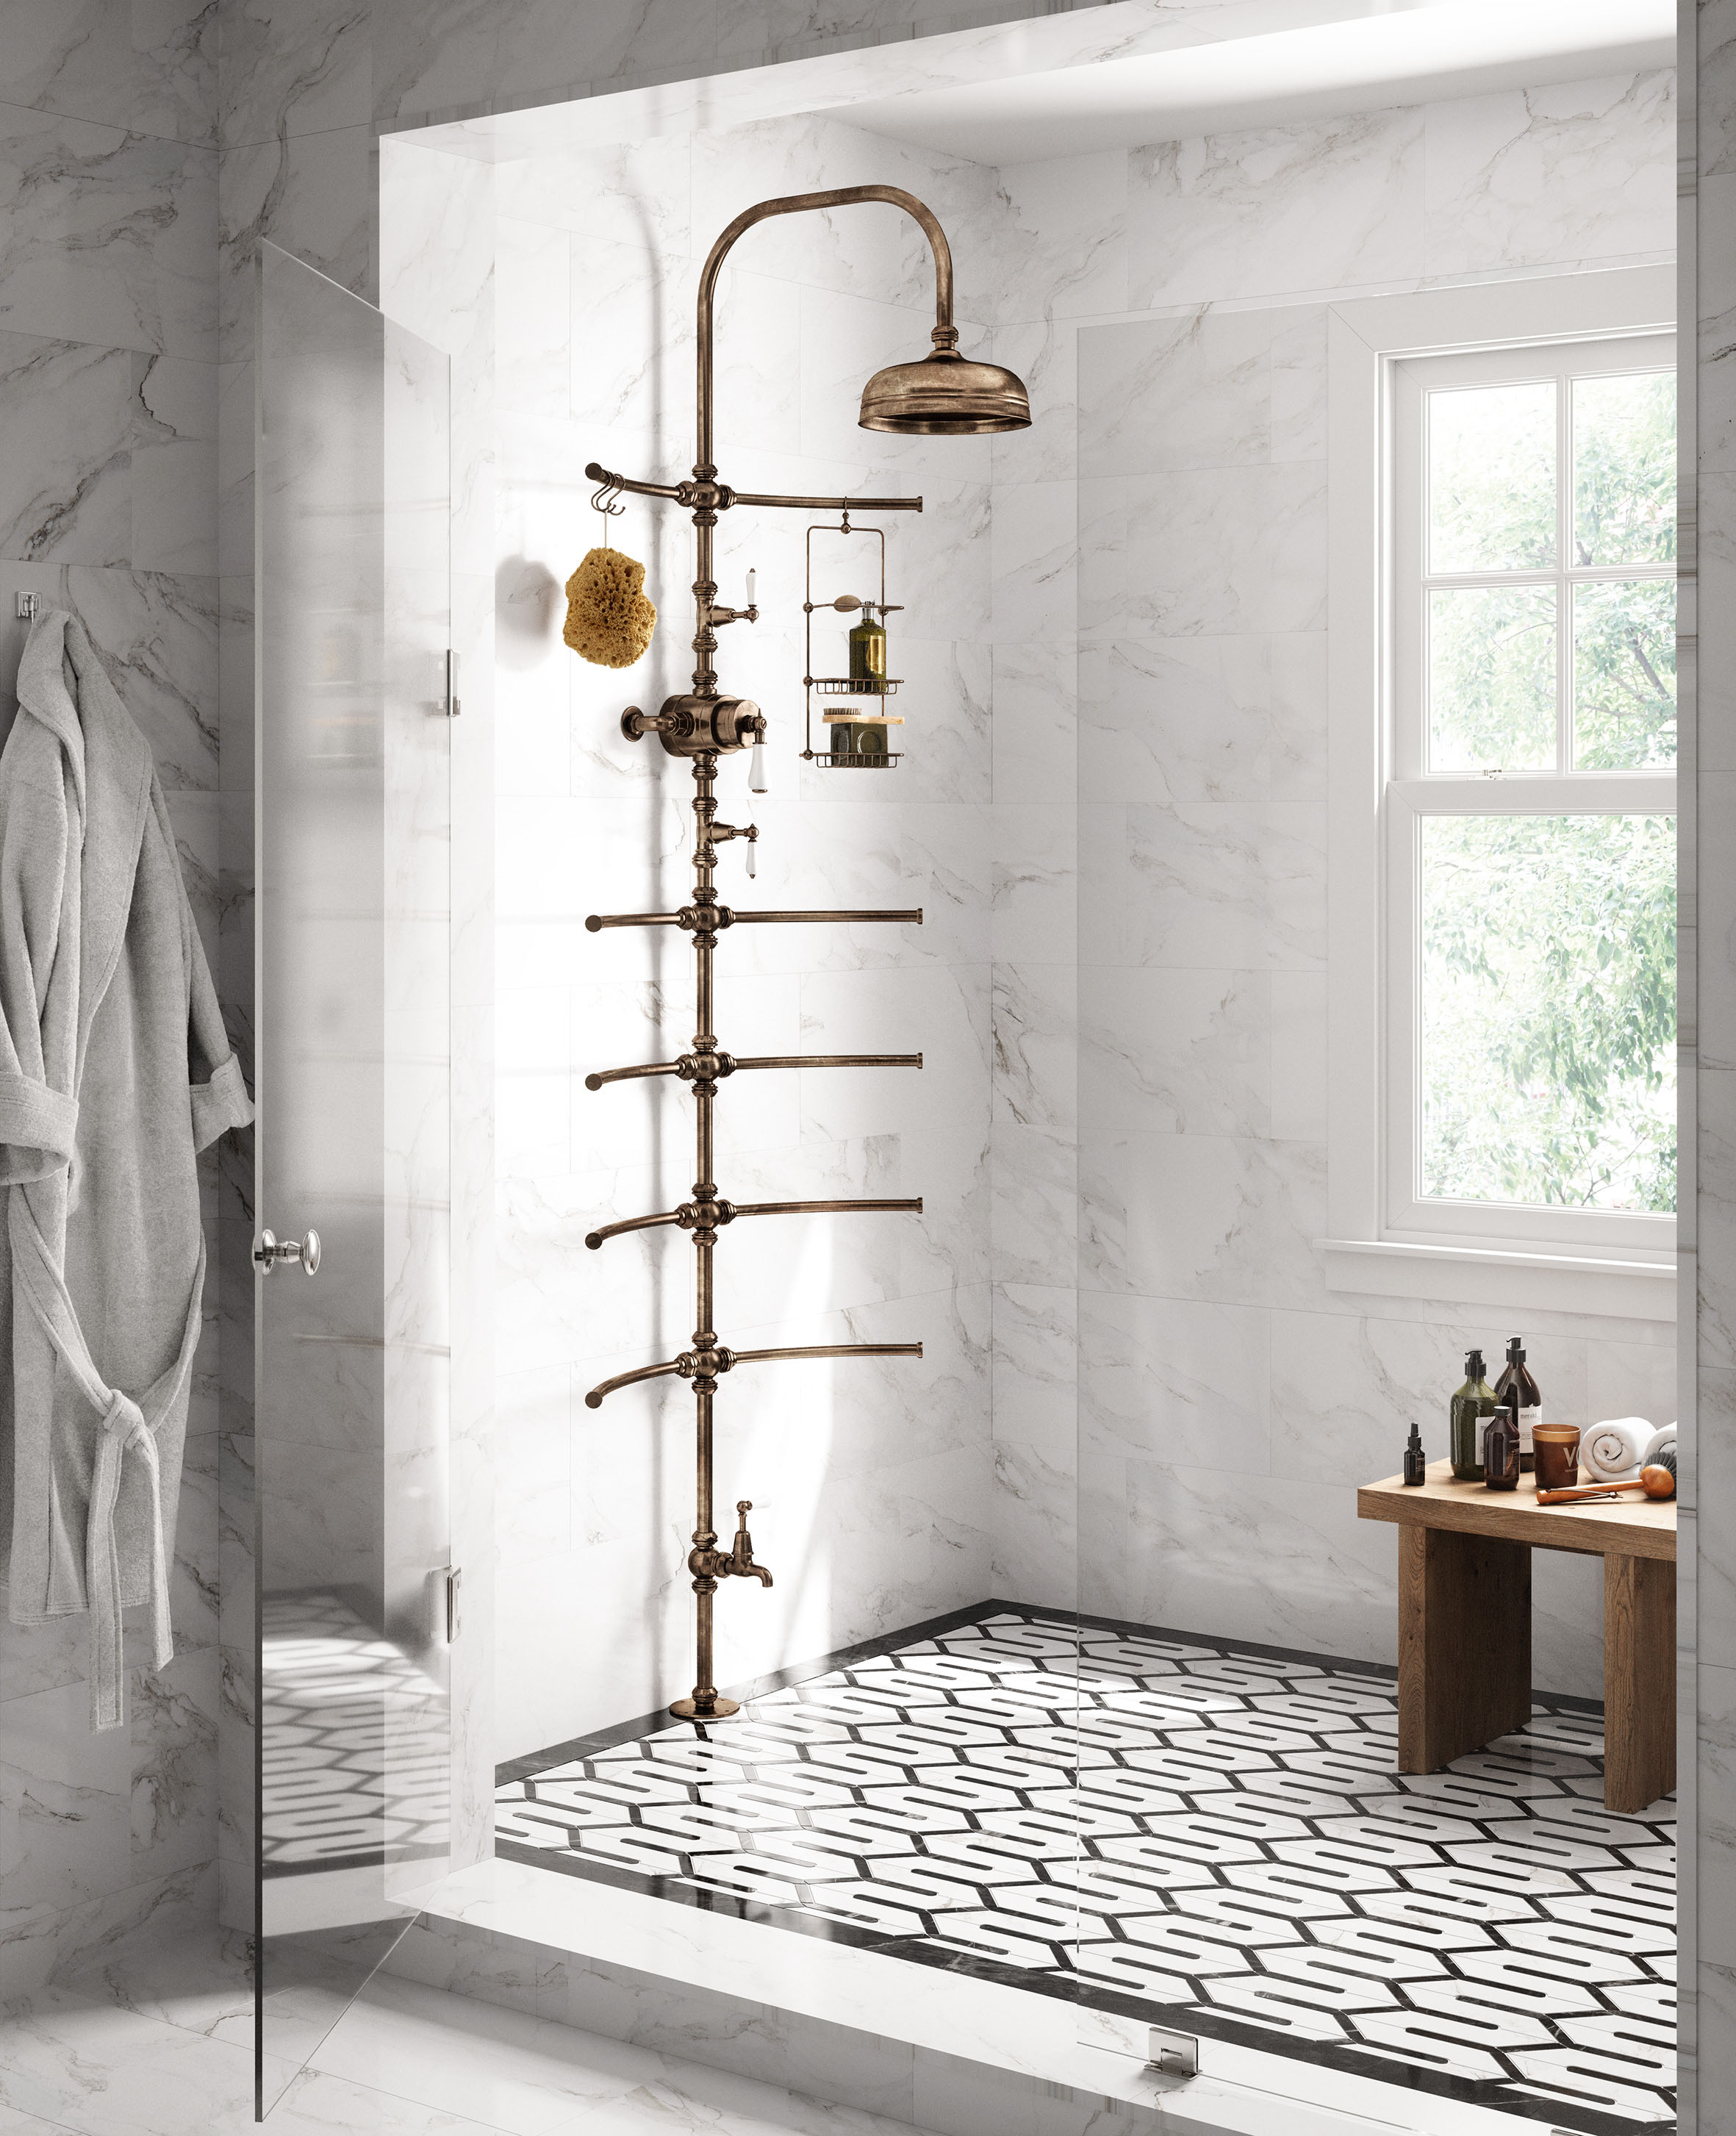 Catchpole Rye: The Joys Of A Shower Which Offers A Touch Of Luxury And